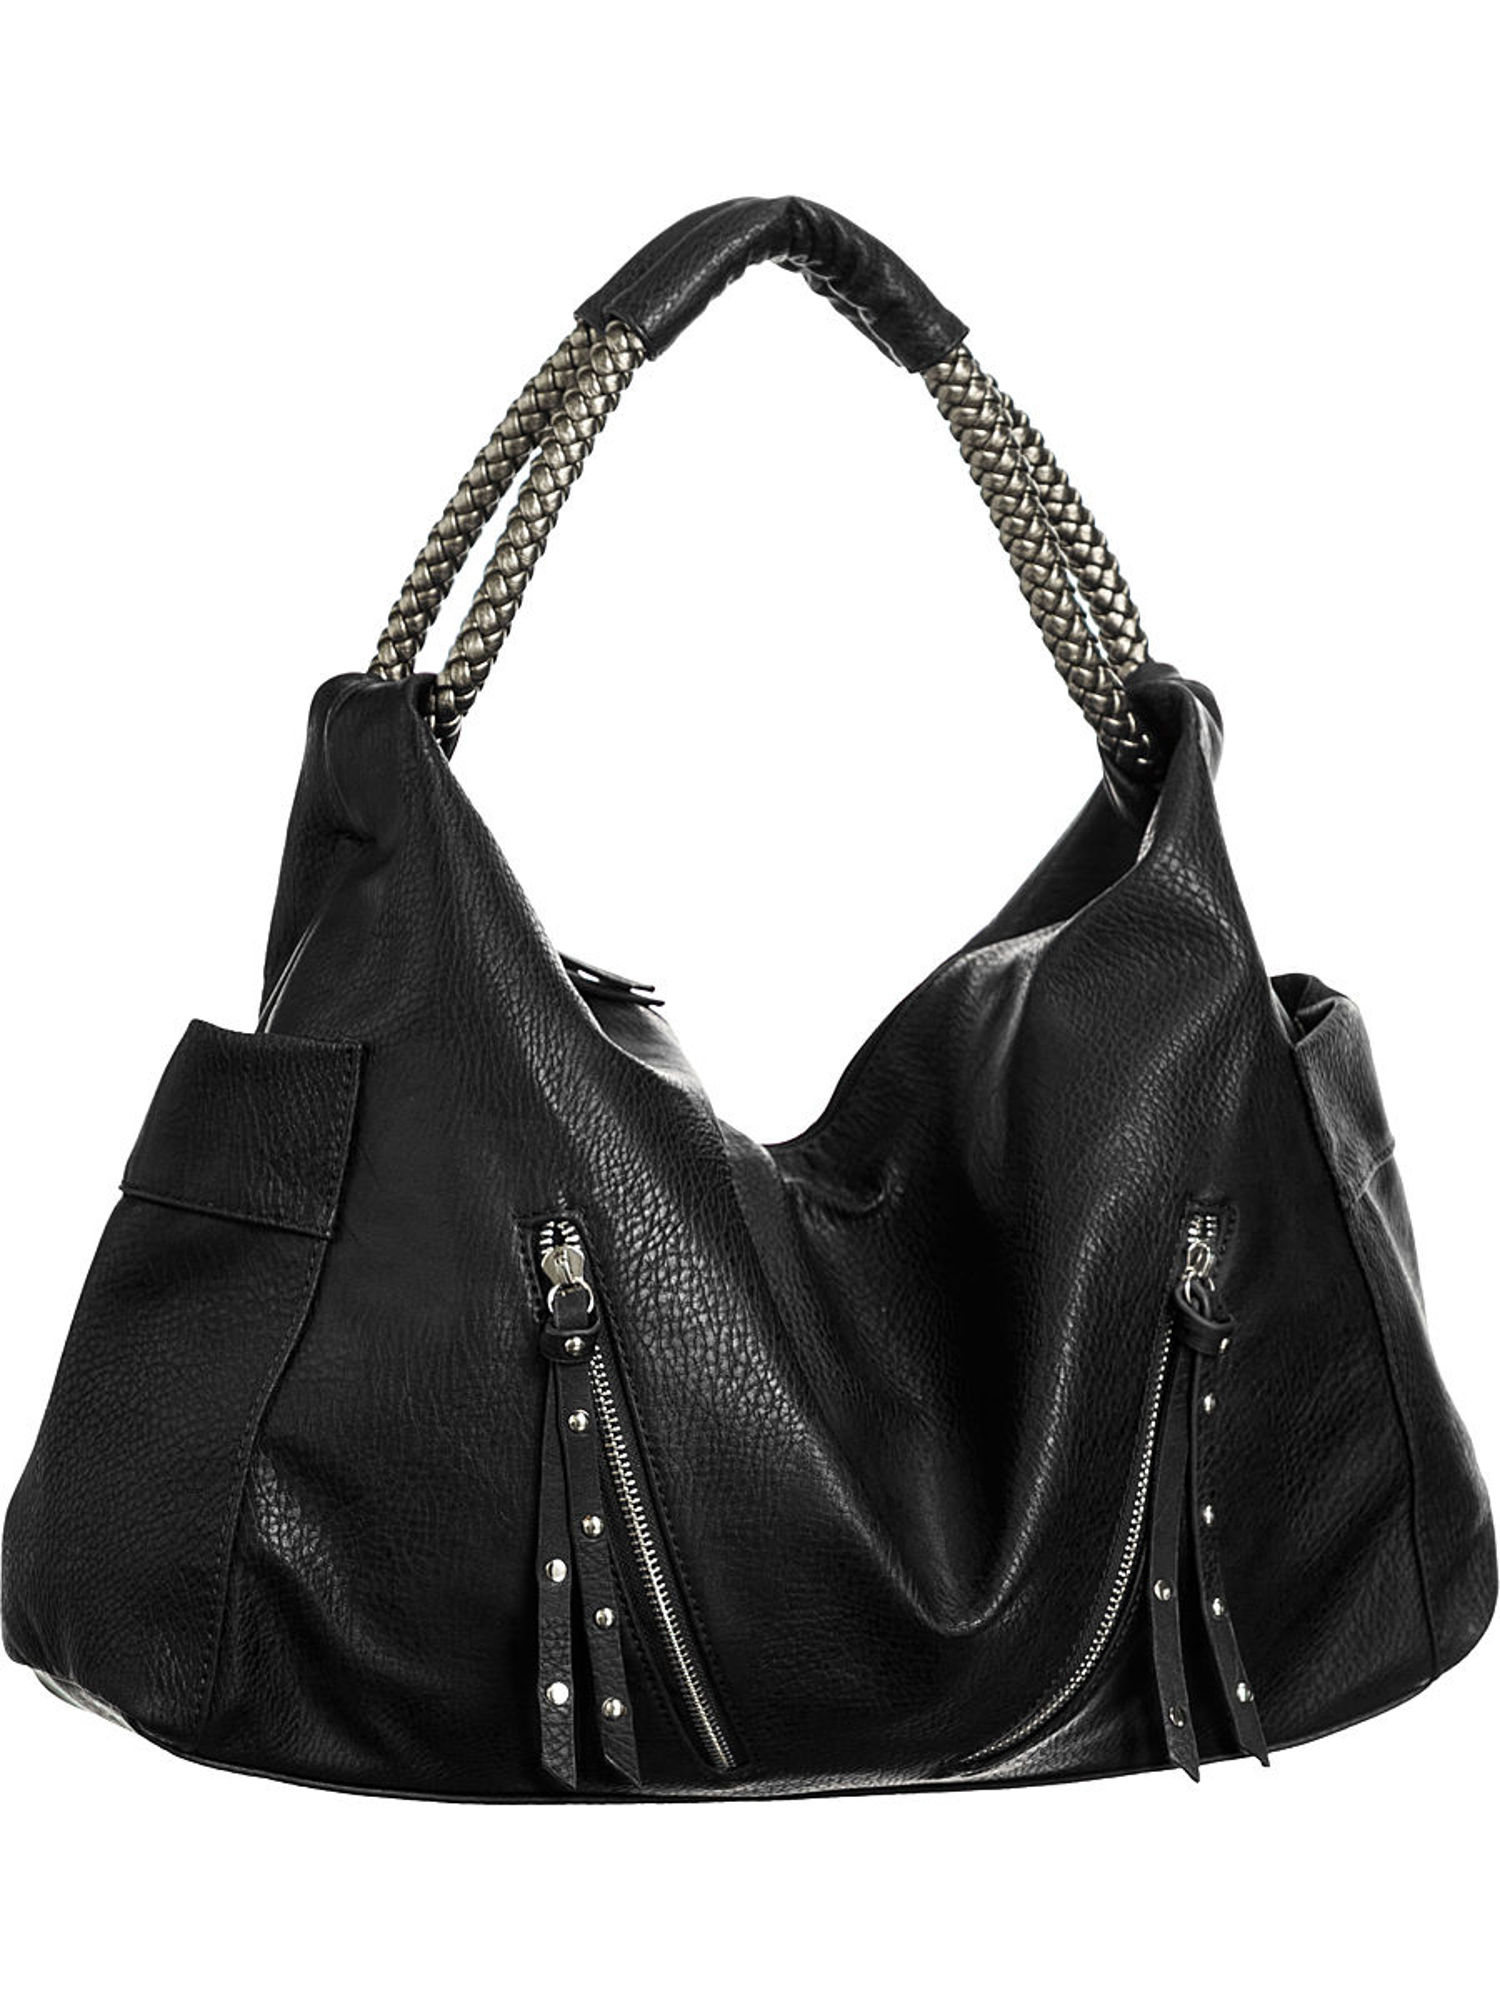 Vitalio Vera Keanu Extra-Large Hobo Oversized Purse